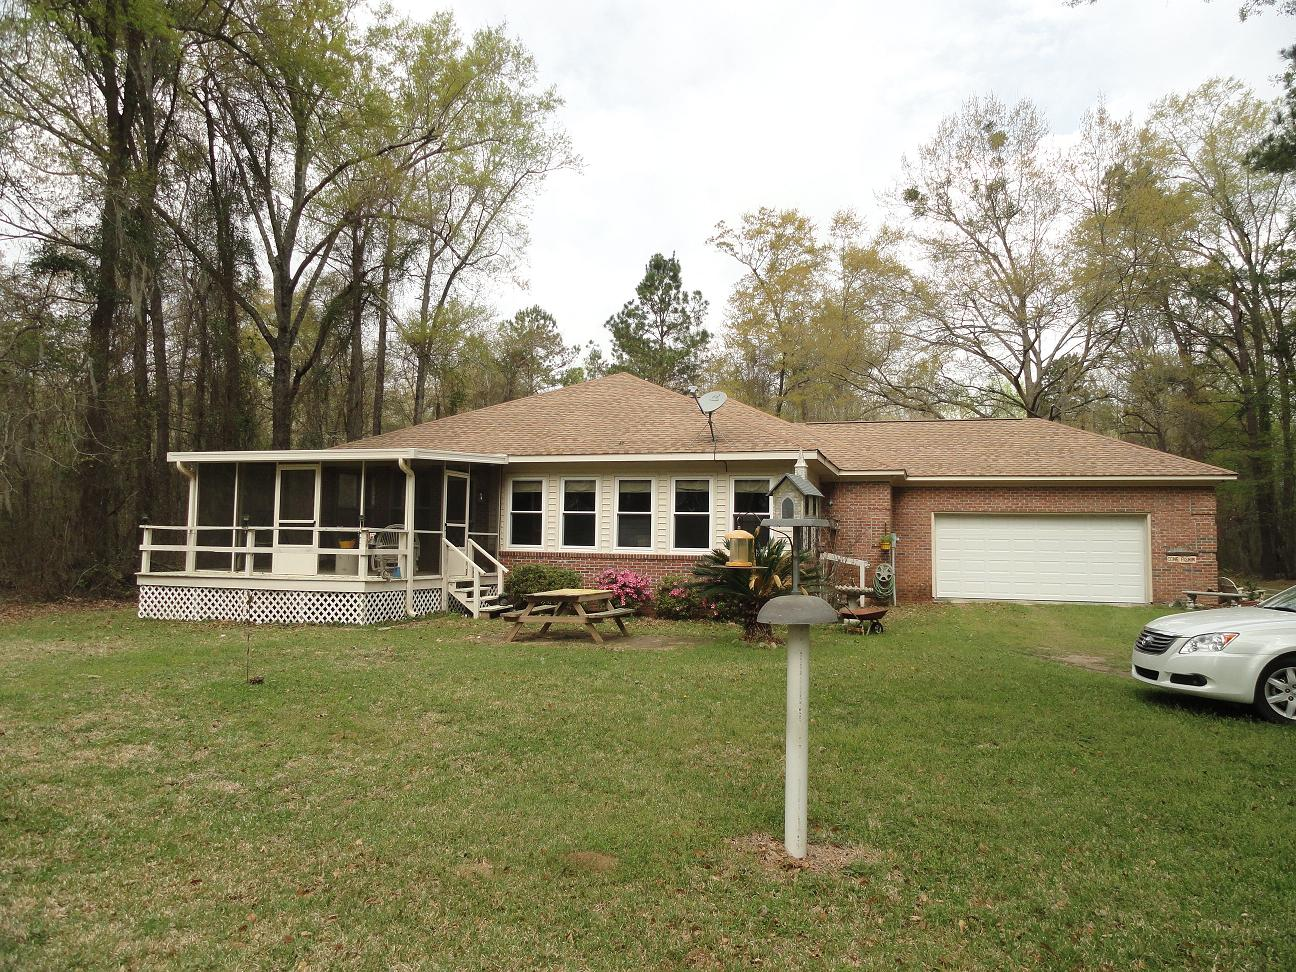 525 Stoudenmire, Cameron, South Carolina 29030